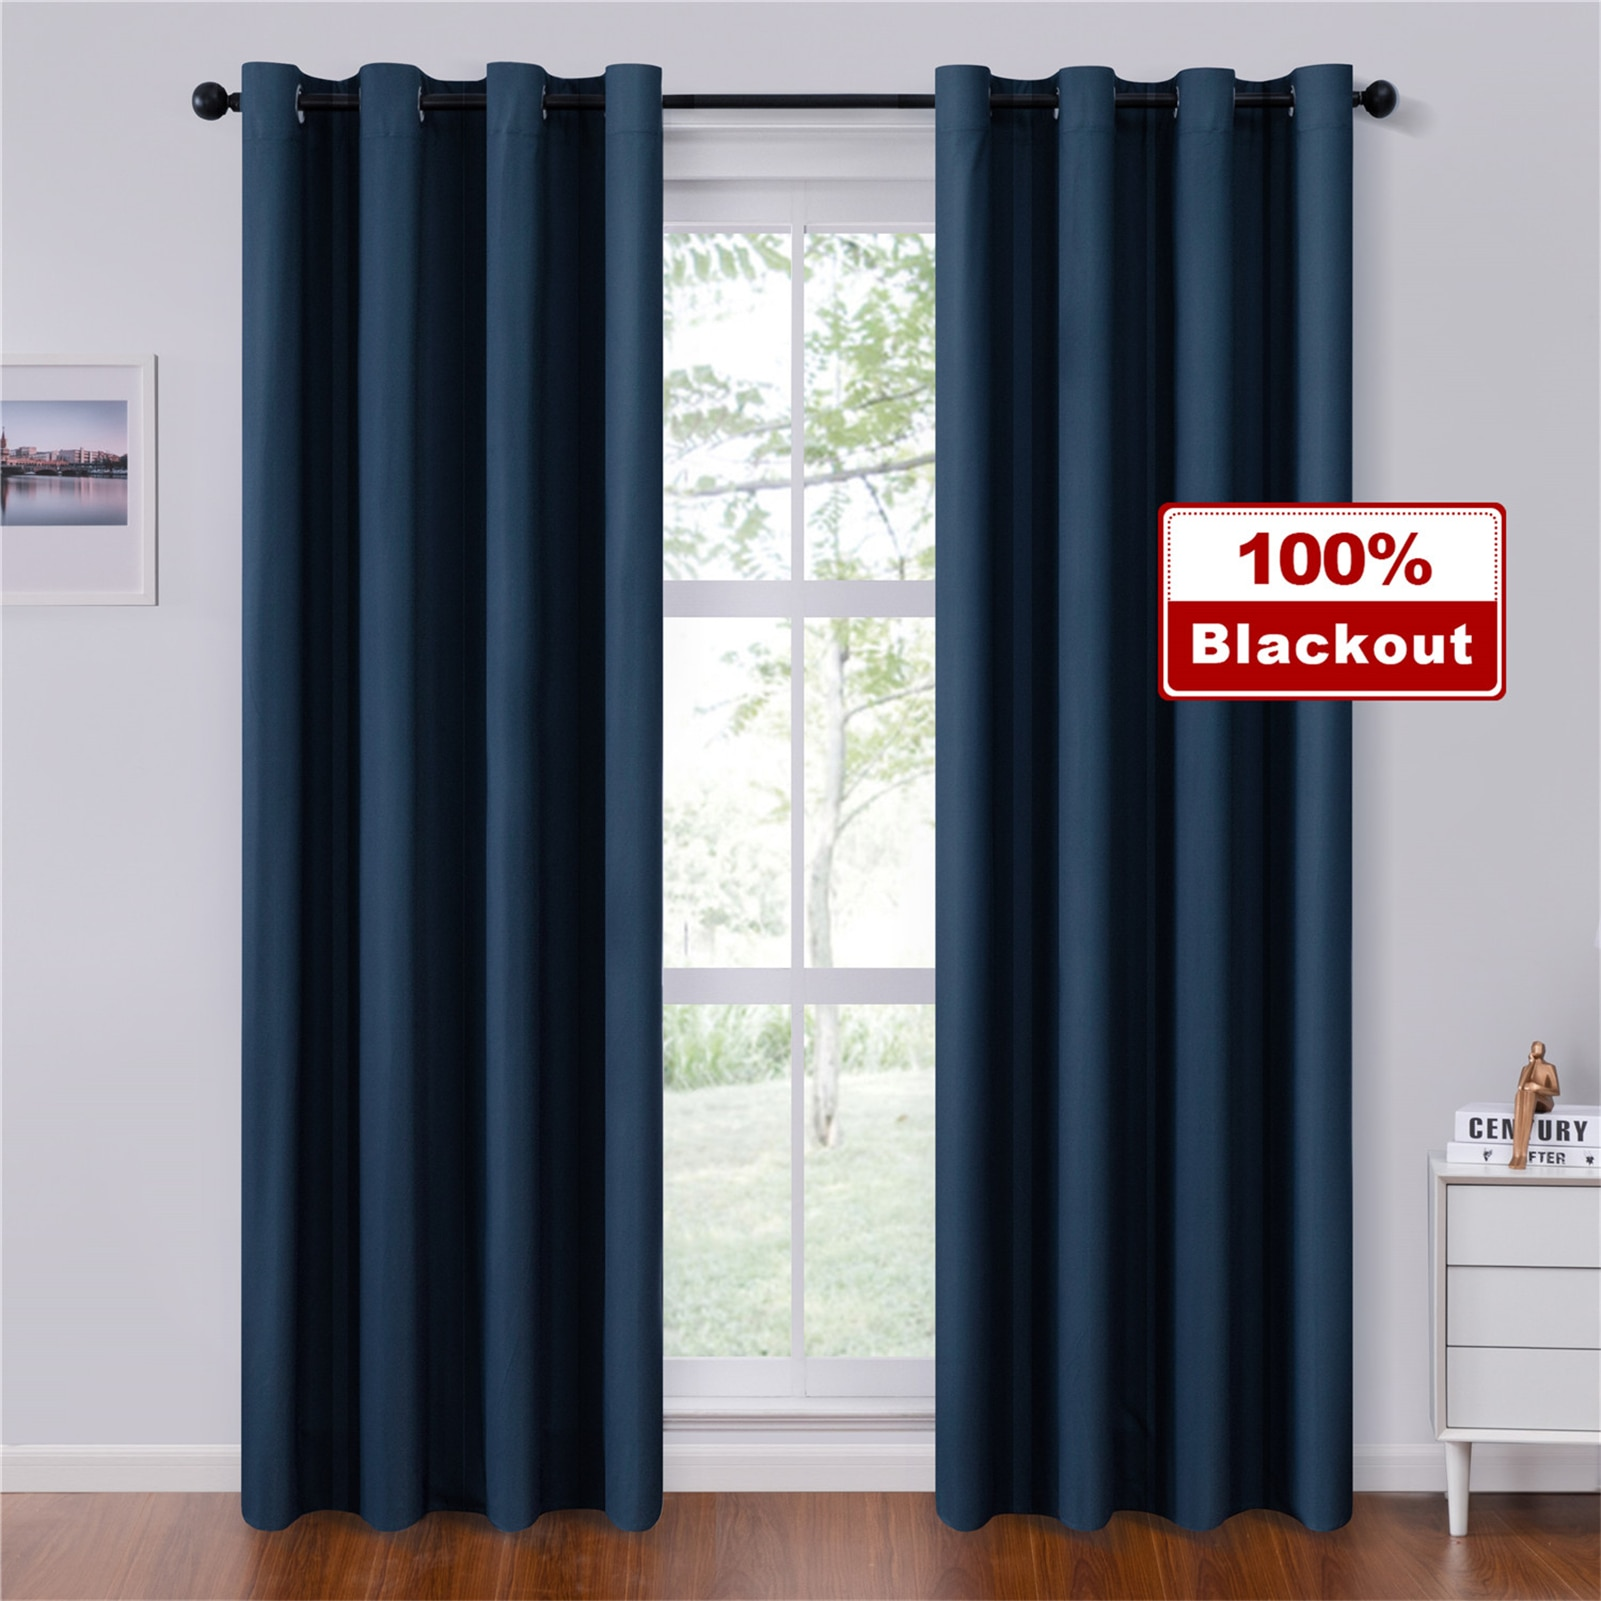 modern printed blackout curtains for living room bedroom window thick curtains for kitchen blinds drapes finished curtain panels Topfinel Solid Blackout Curtains For Bedroom Living Room Window Treatment Blinds Decoration Modern Thicken Finished Drapes